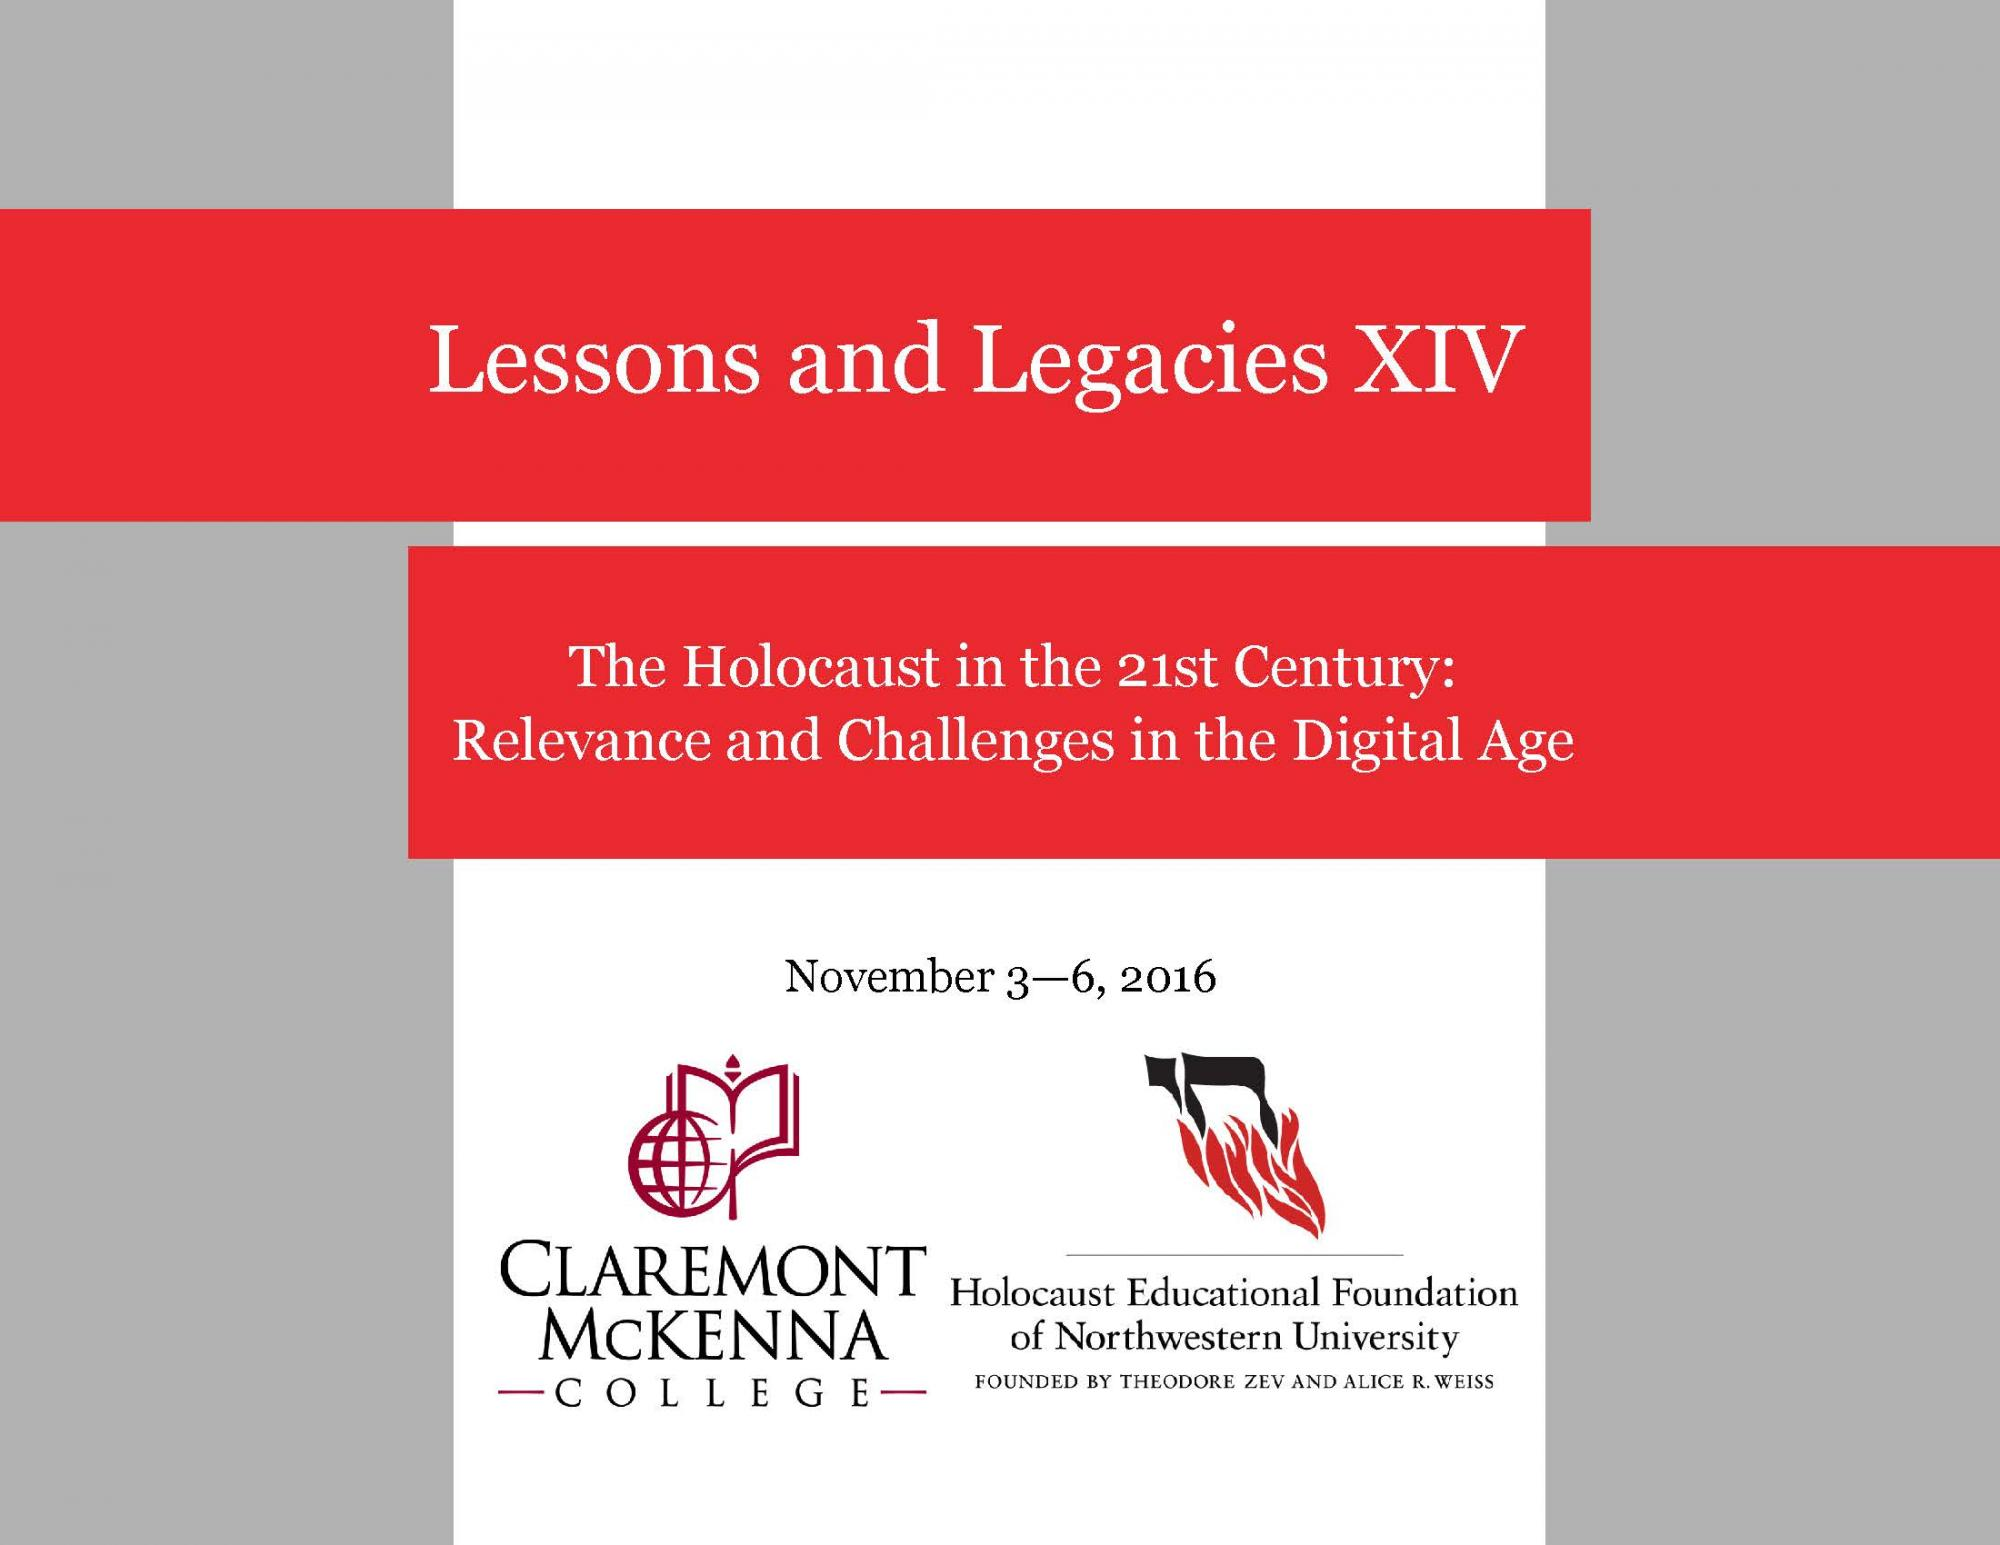 Lessons and Legacies conference flyer